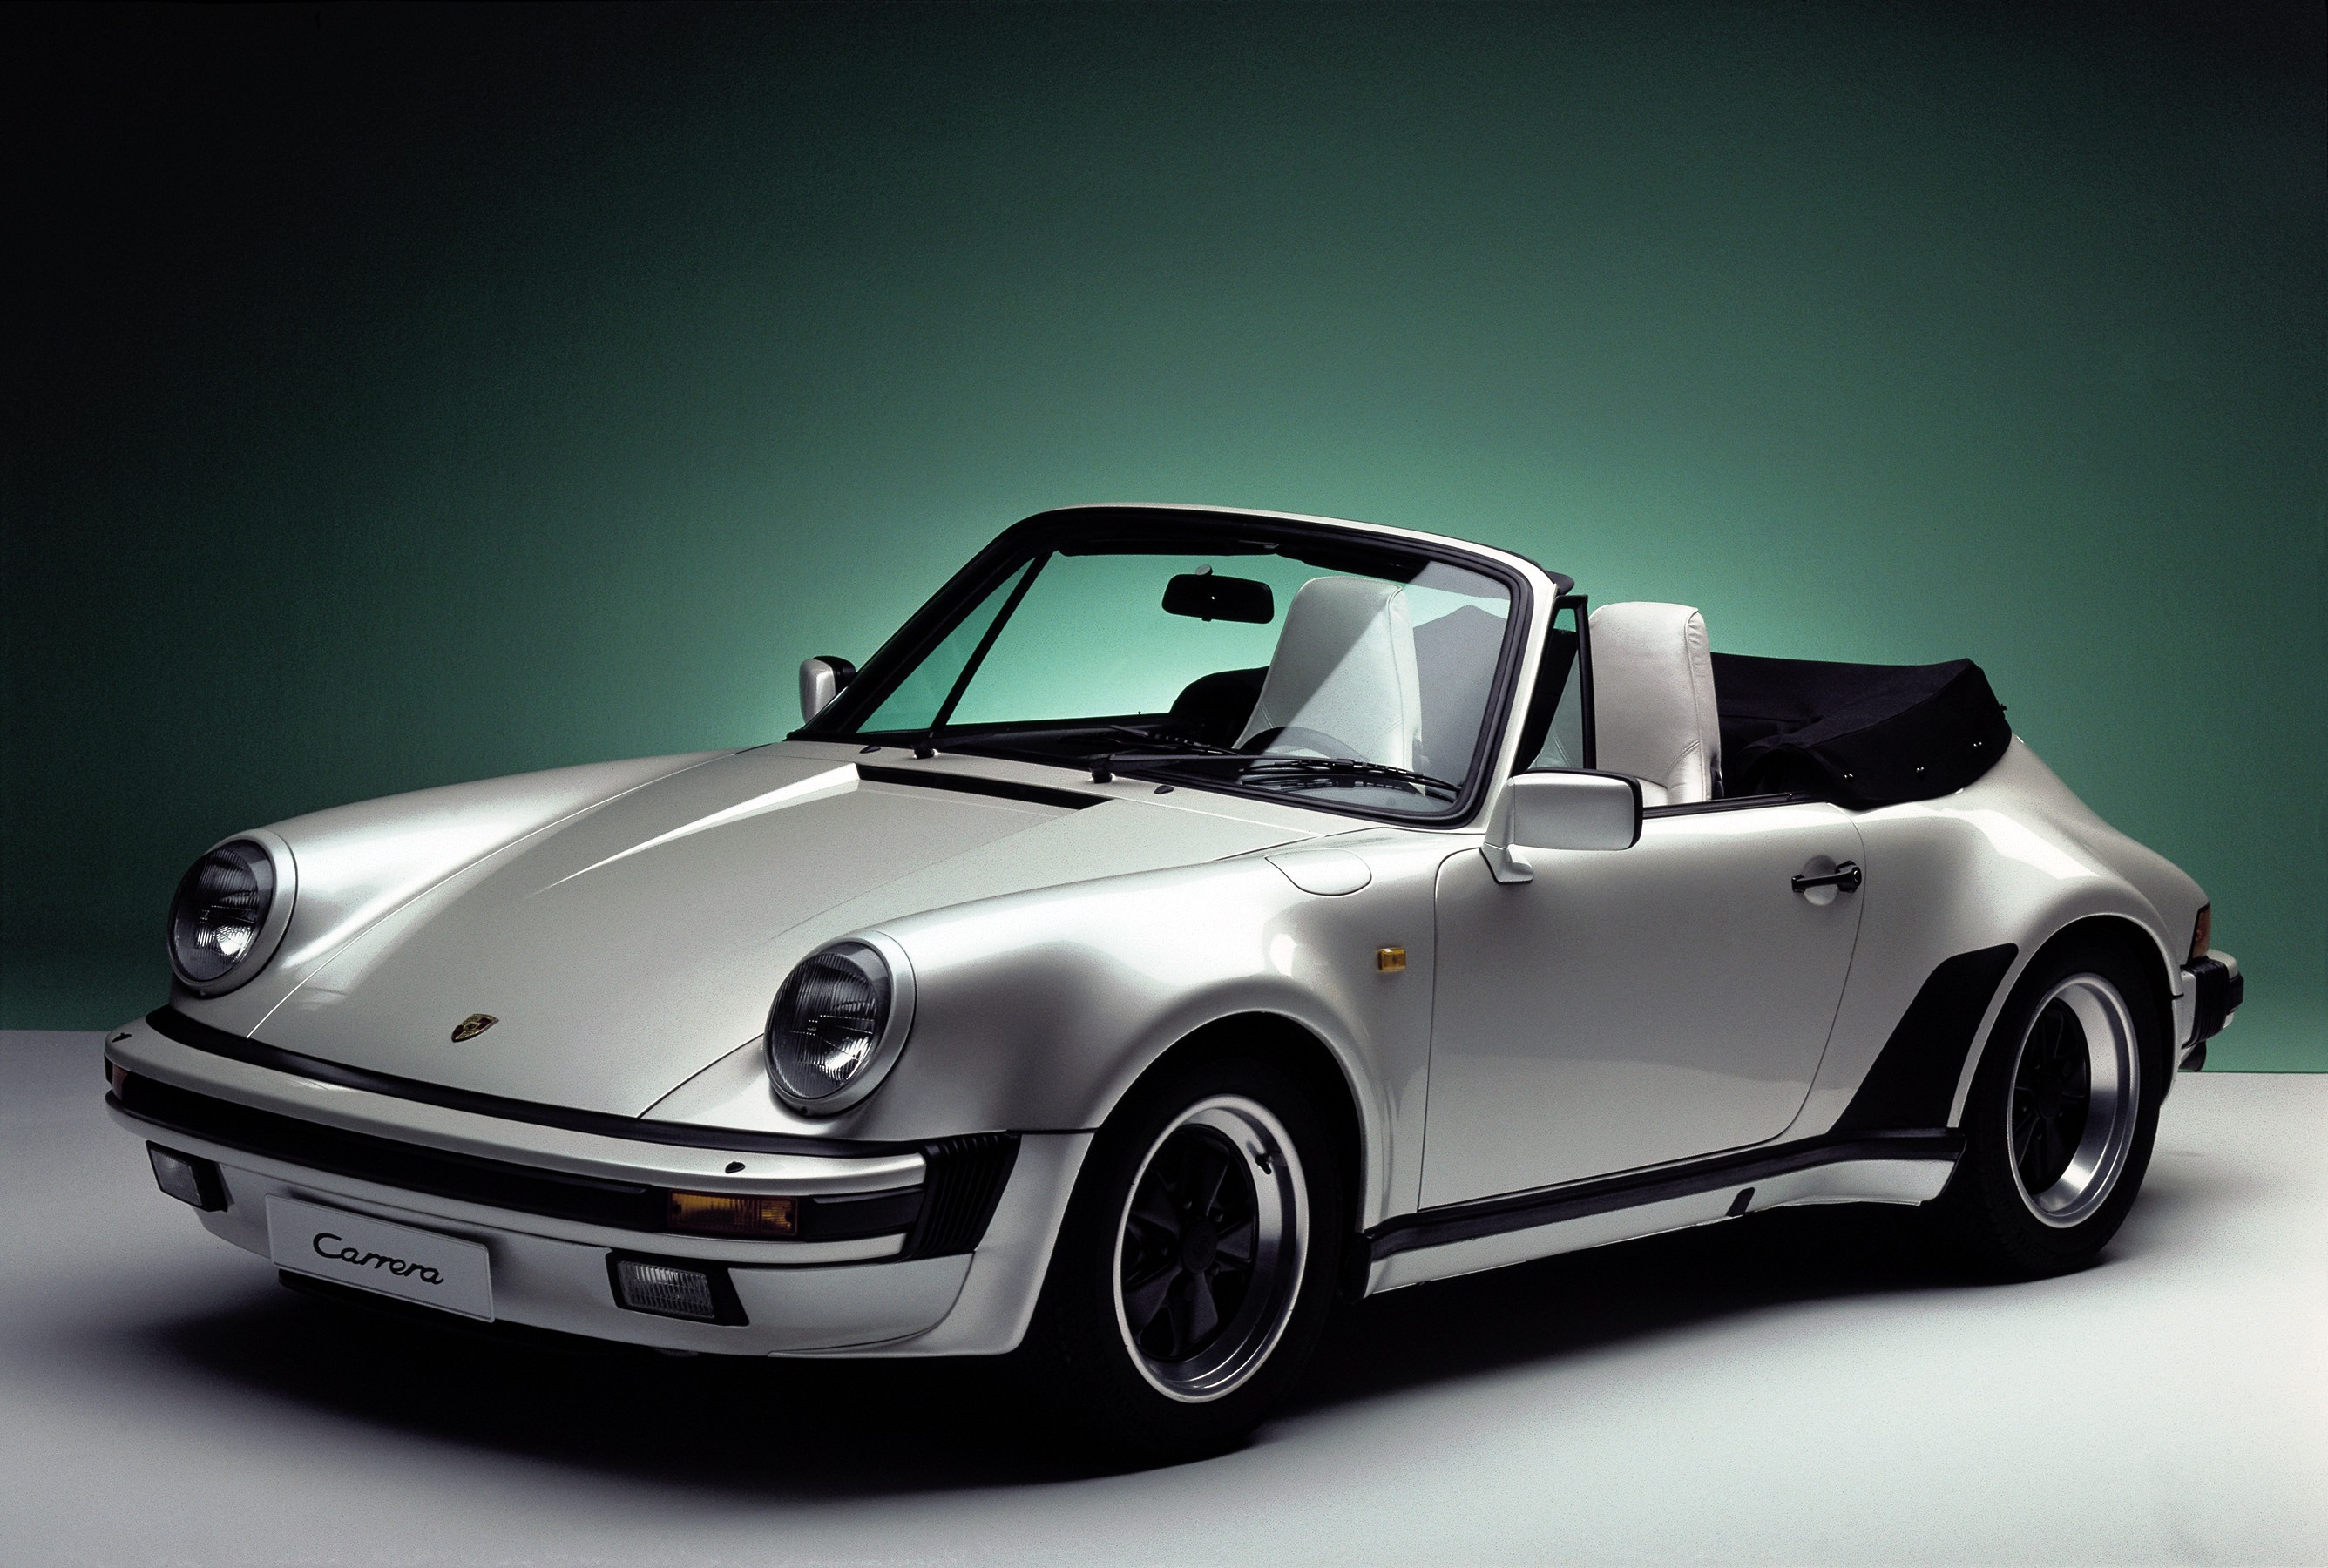 porsche 911 carrera cabriolet 930 1983 1984 1985. Black Bedroom Furniture Sets. Home Design Ideas